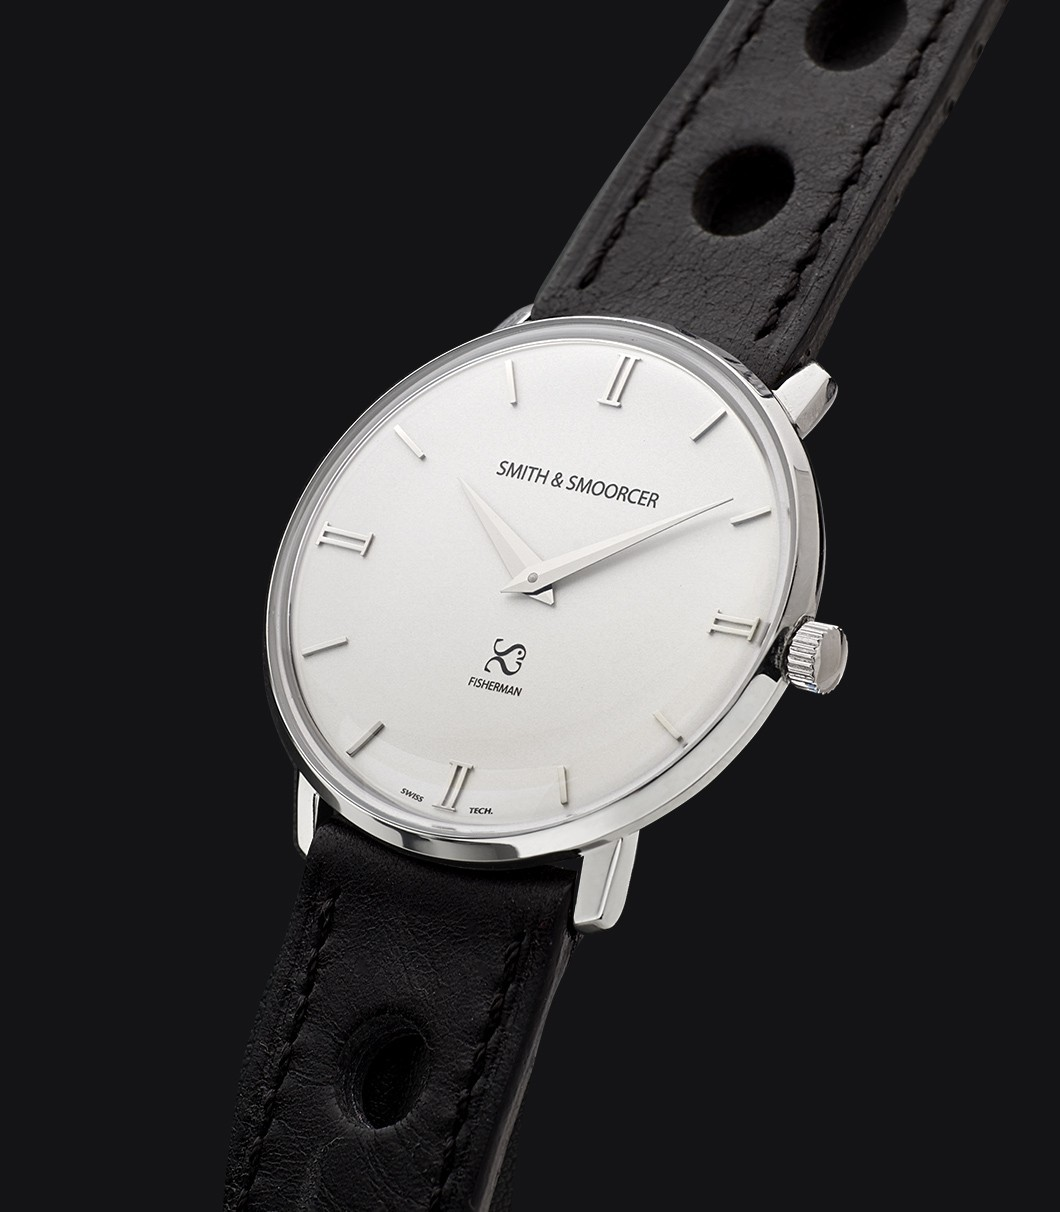 White Dial Watch Fisherman Snowy Racing Black